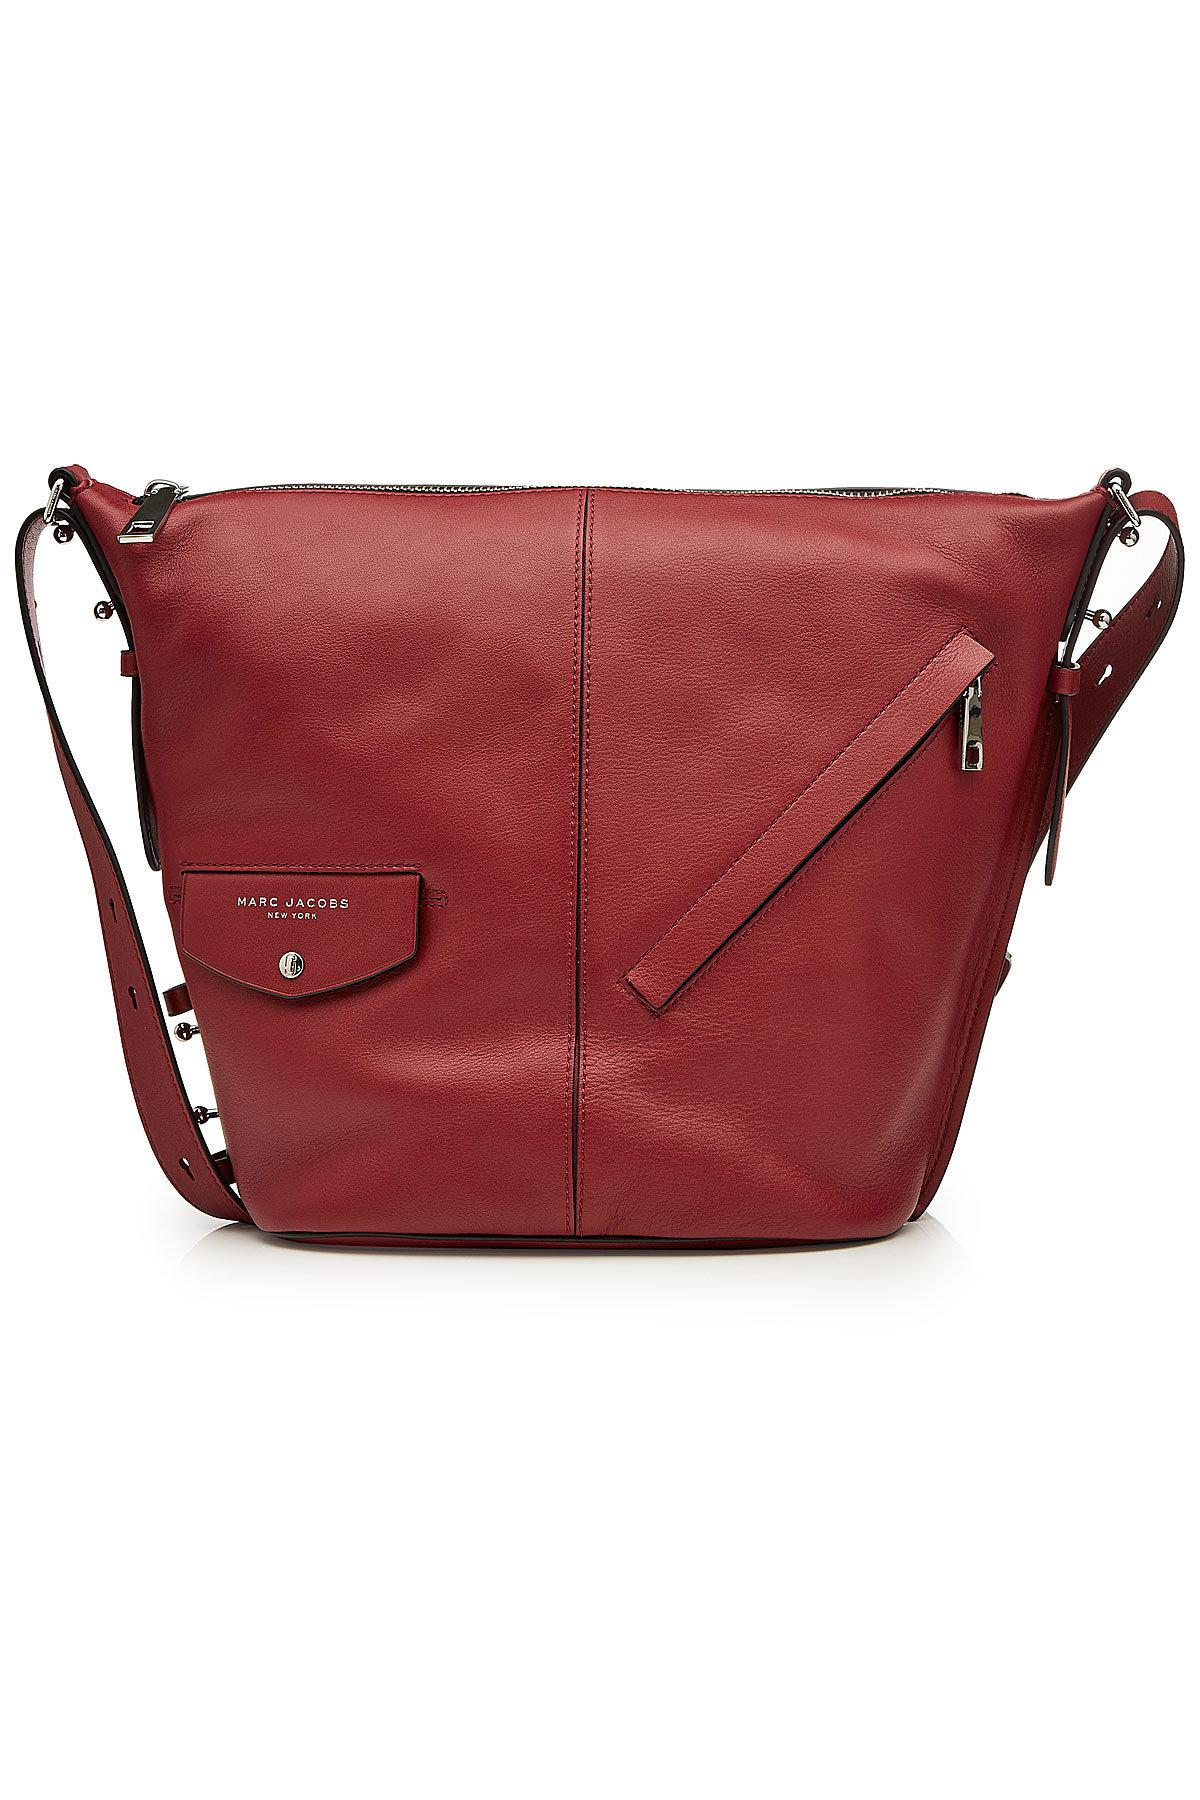 cea4ade4c81bc5 Marc Jacobs Sling Bag Red | Stanford Center for Opportunity Policy ...